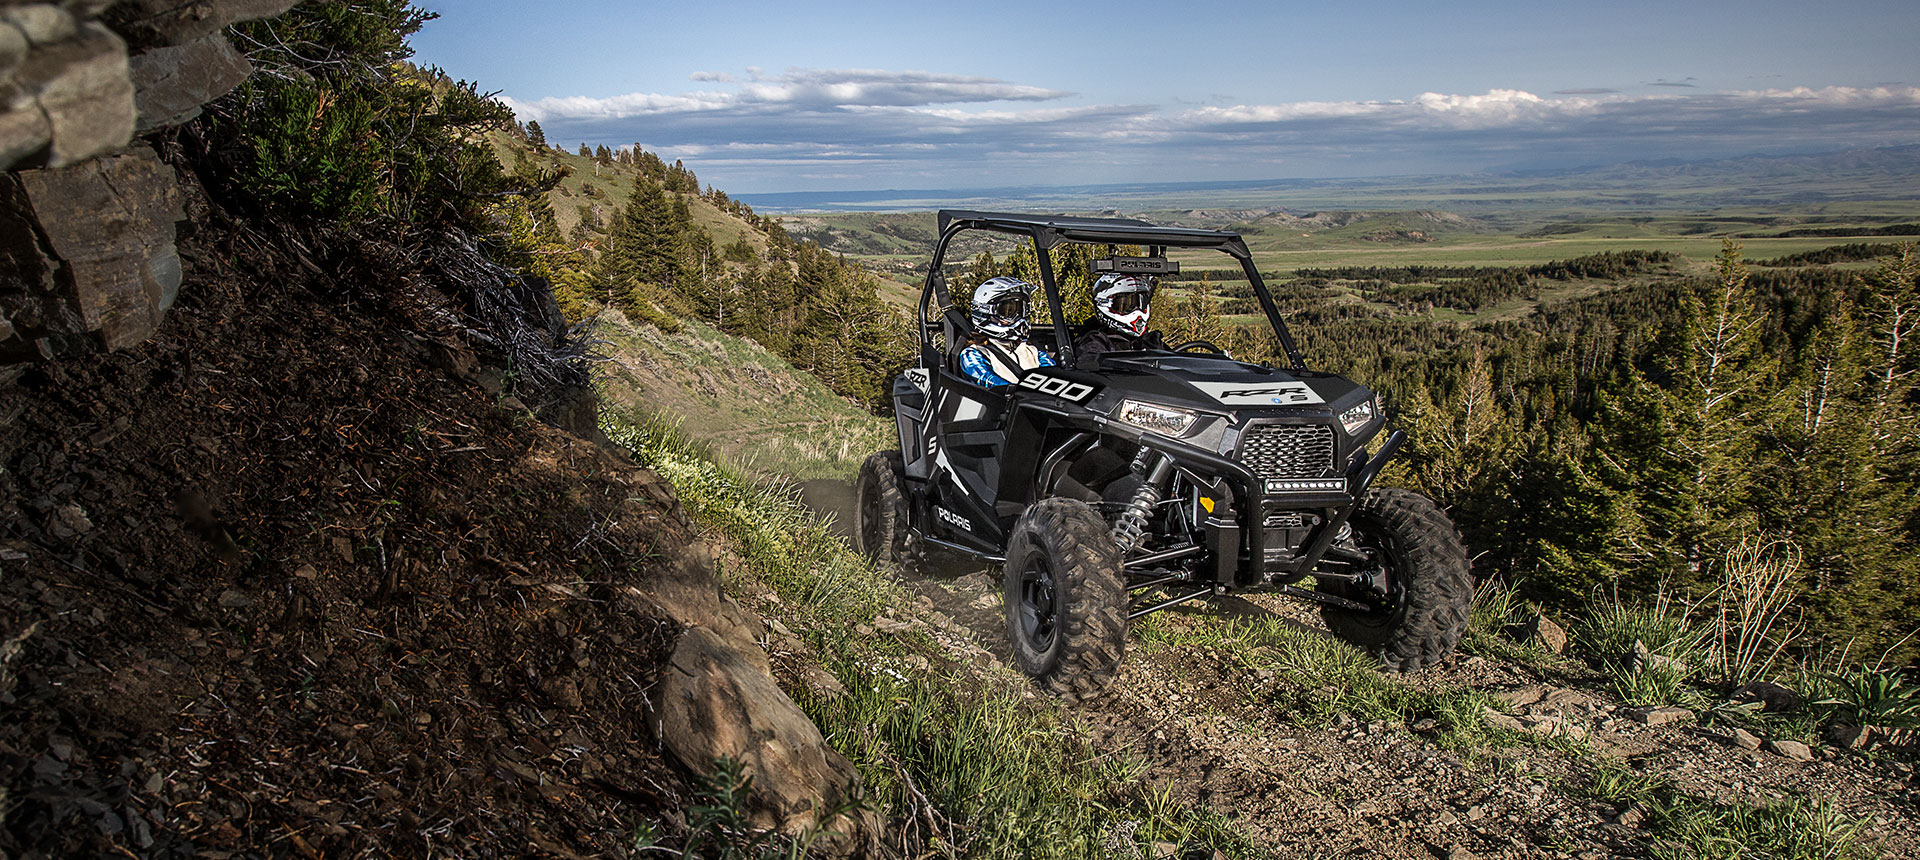 2019 Polaris RZR S 900 in Hermitage, Pennsylvania - Photo 4